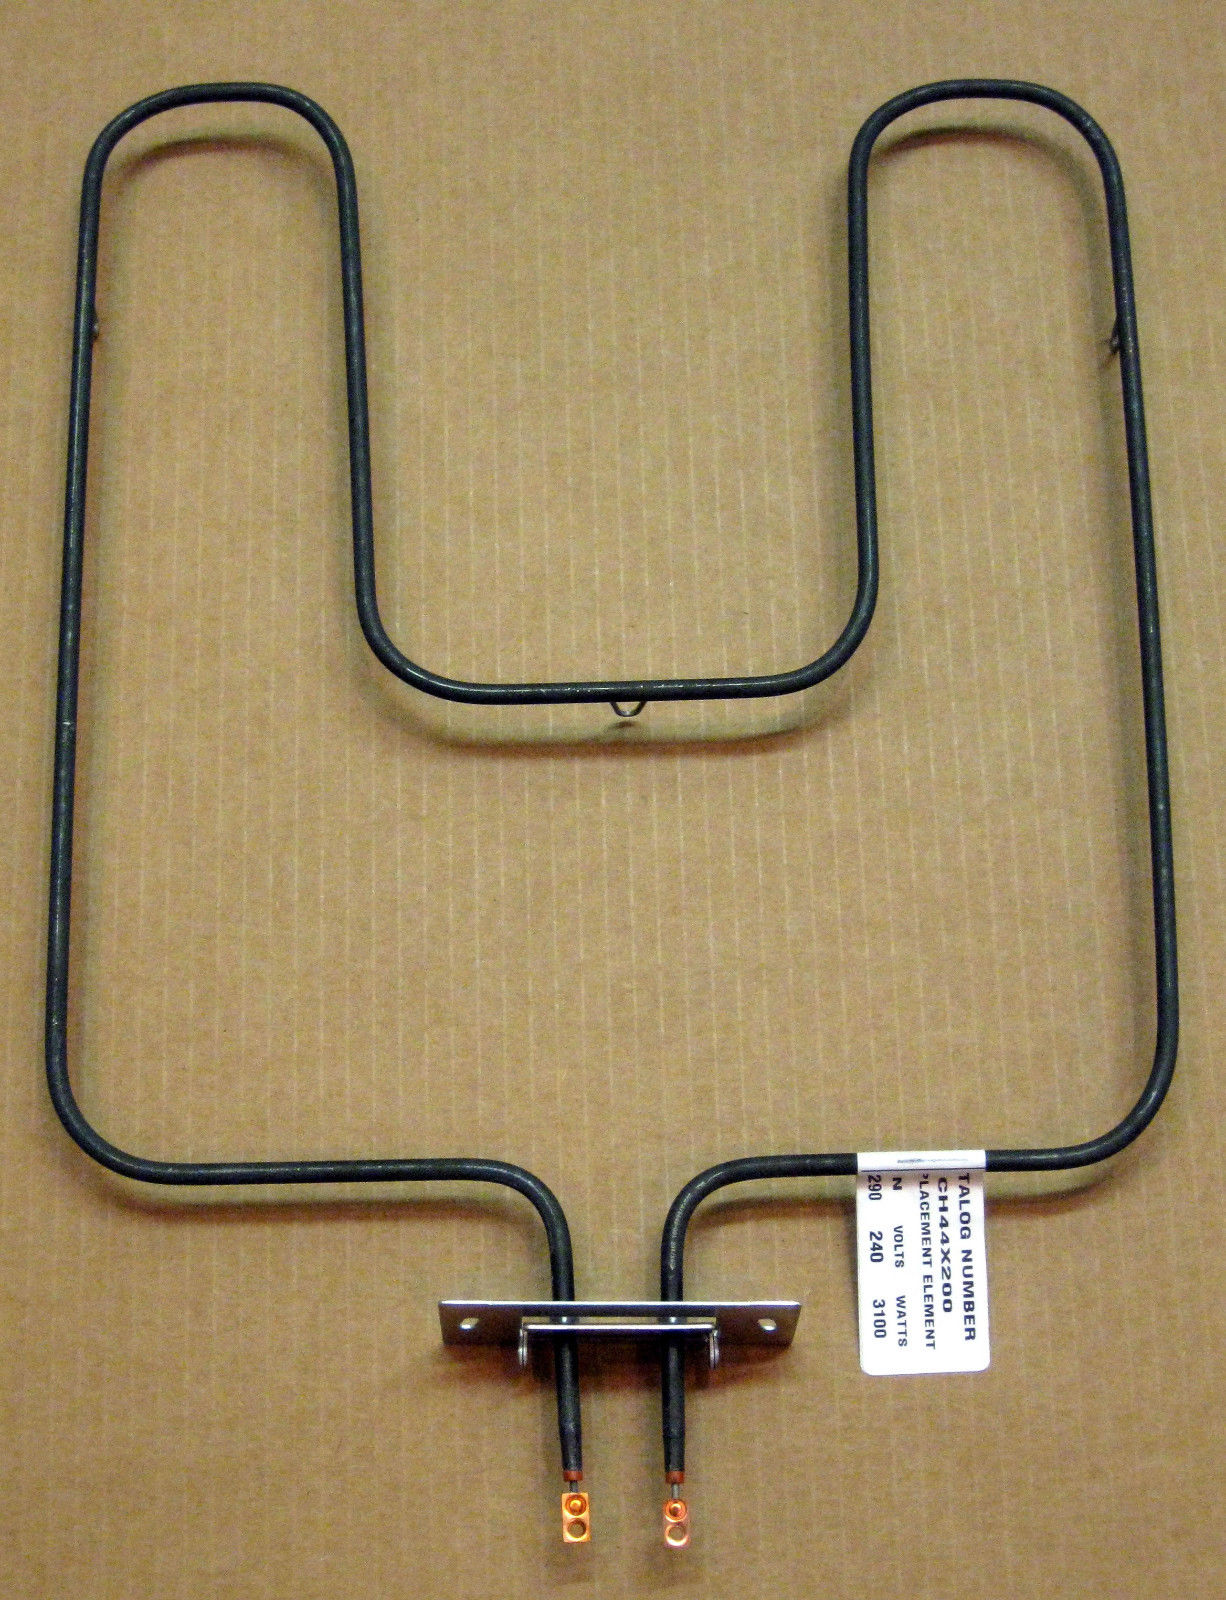 Hotpoint Oven Heating Element Replacement Wb44x200 For Vintage Hotpoint Range Oven Element Bake Unit Heating